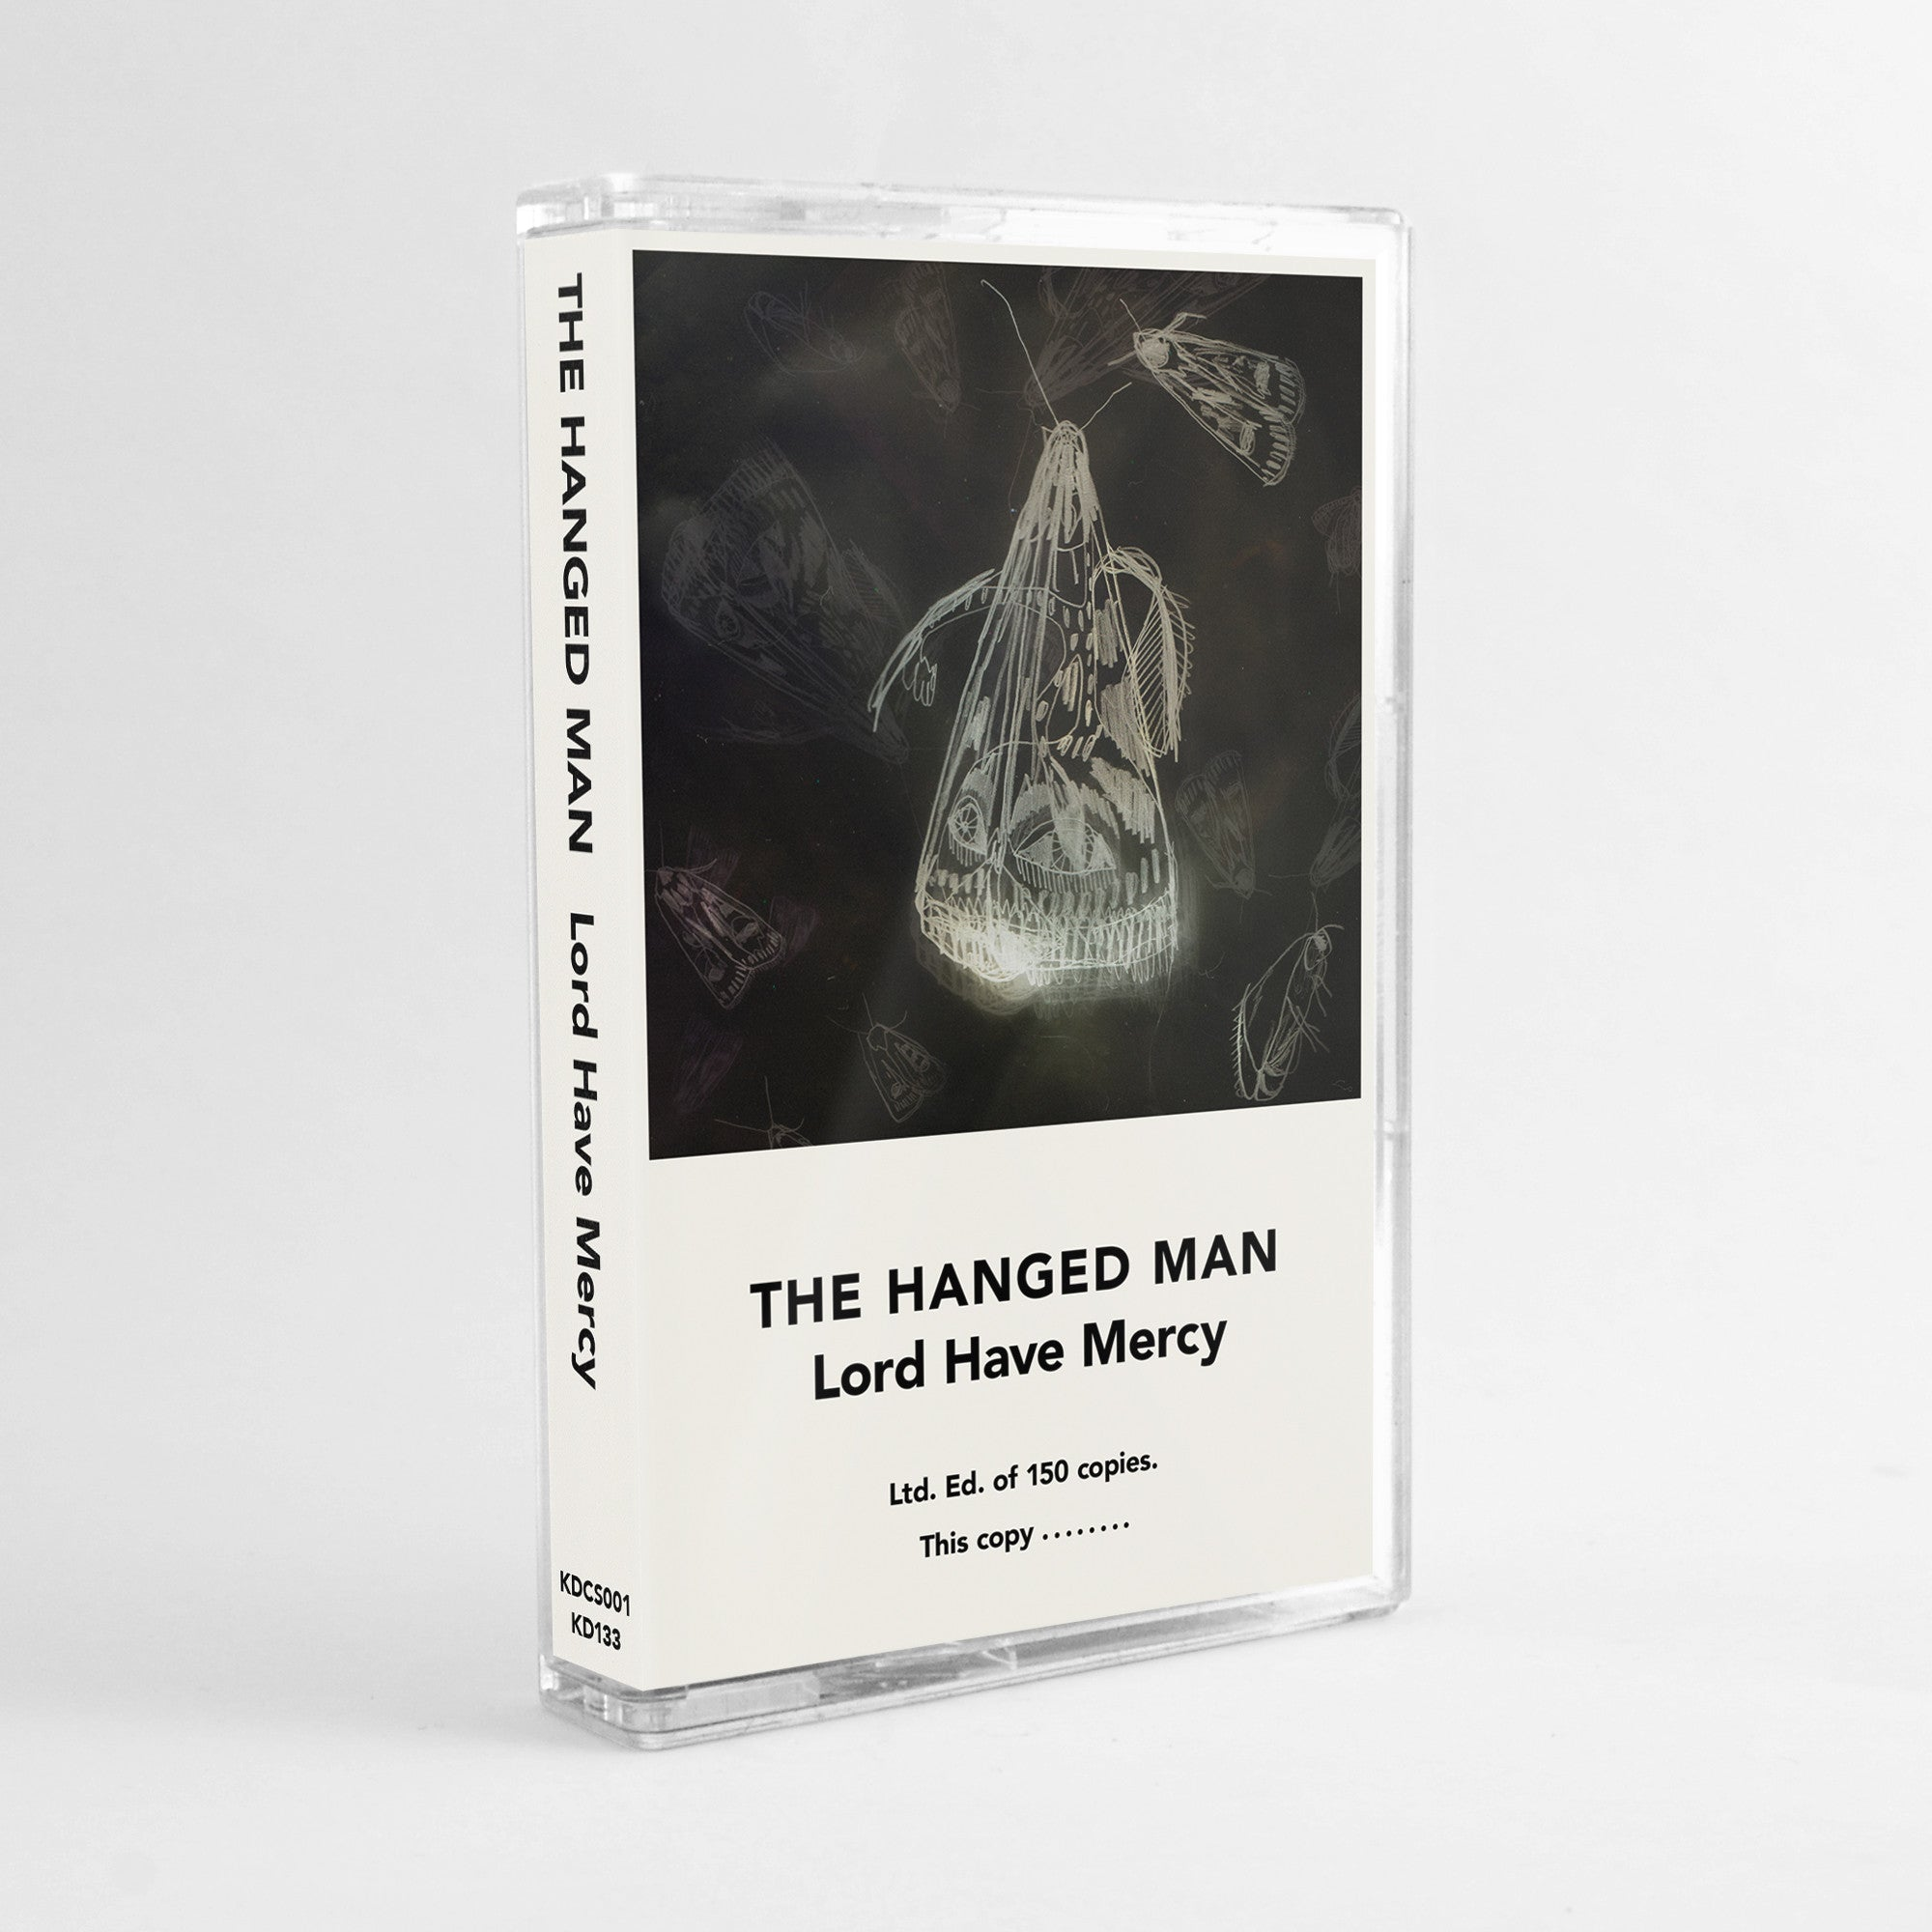 The Hanged Man - Lord Have Mercy